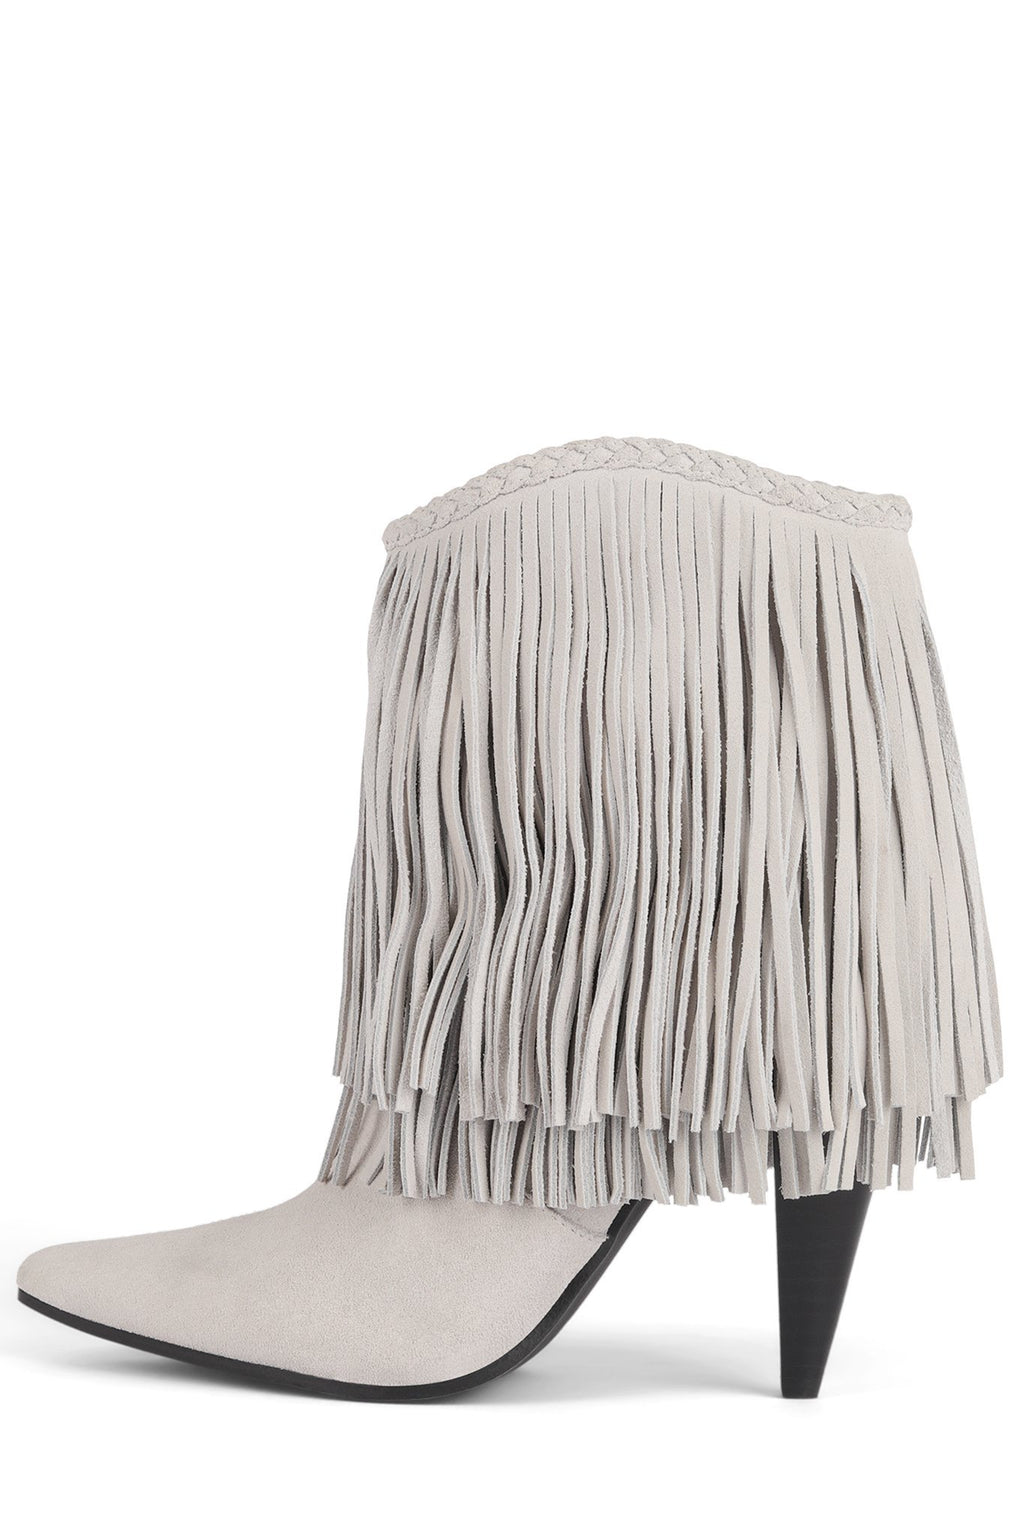 CAVORTS Heeled Bootie YYH Ivory Suede 6